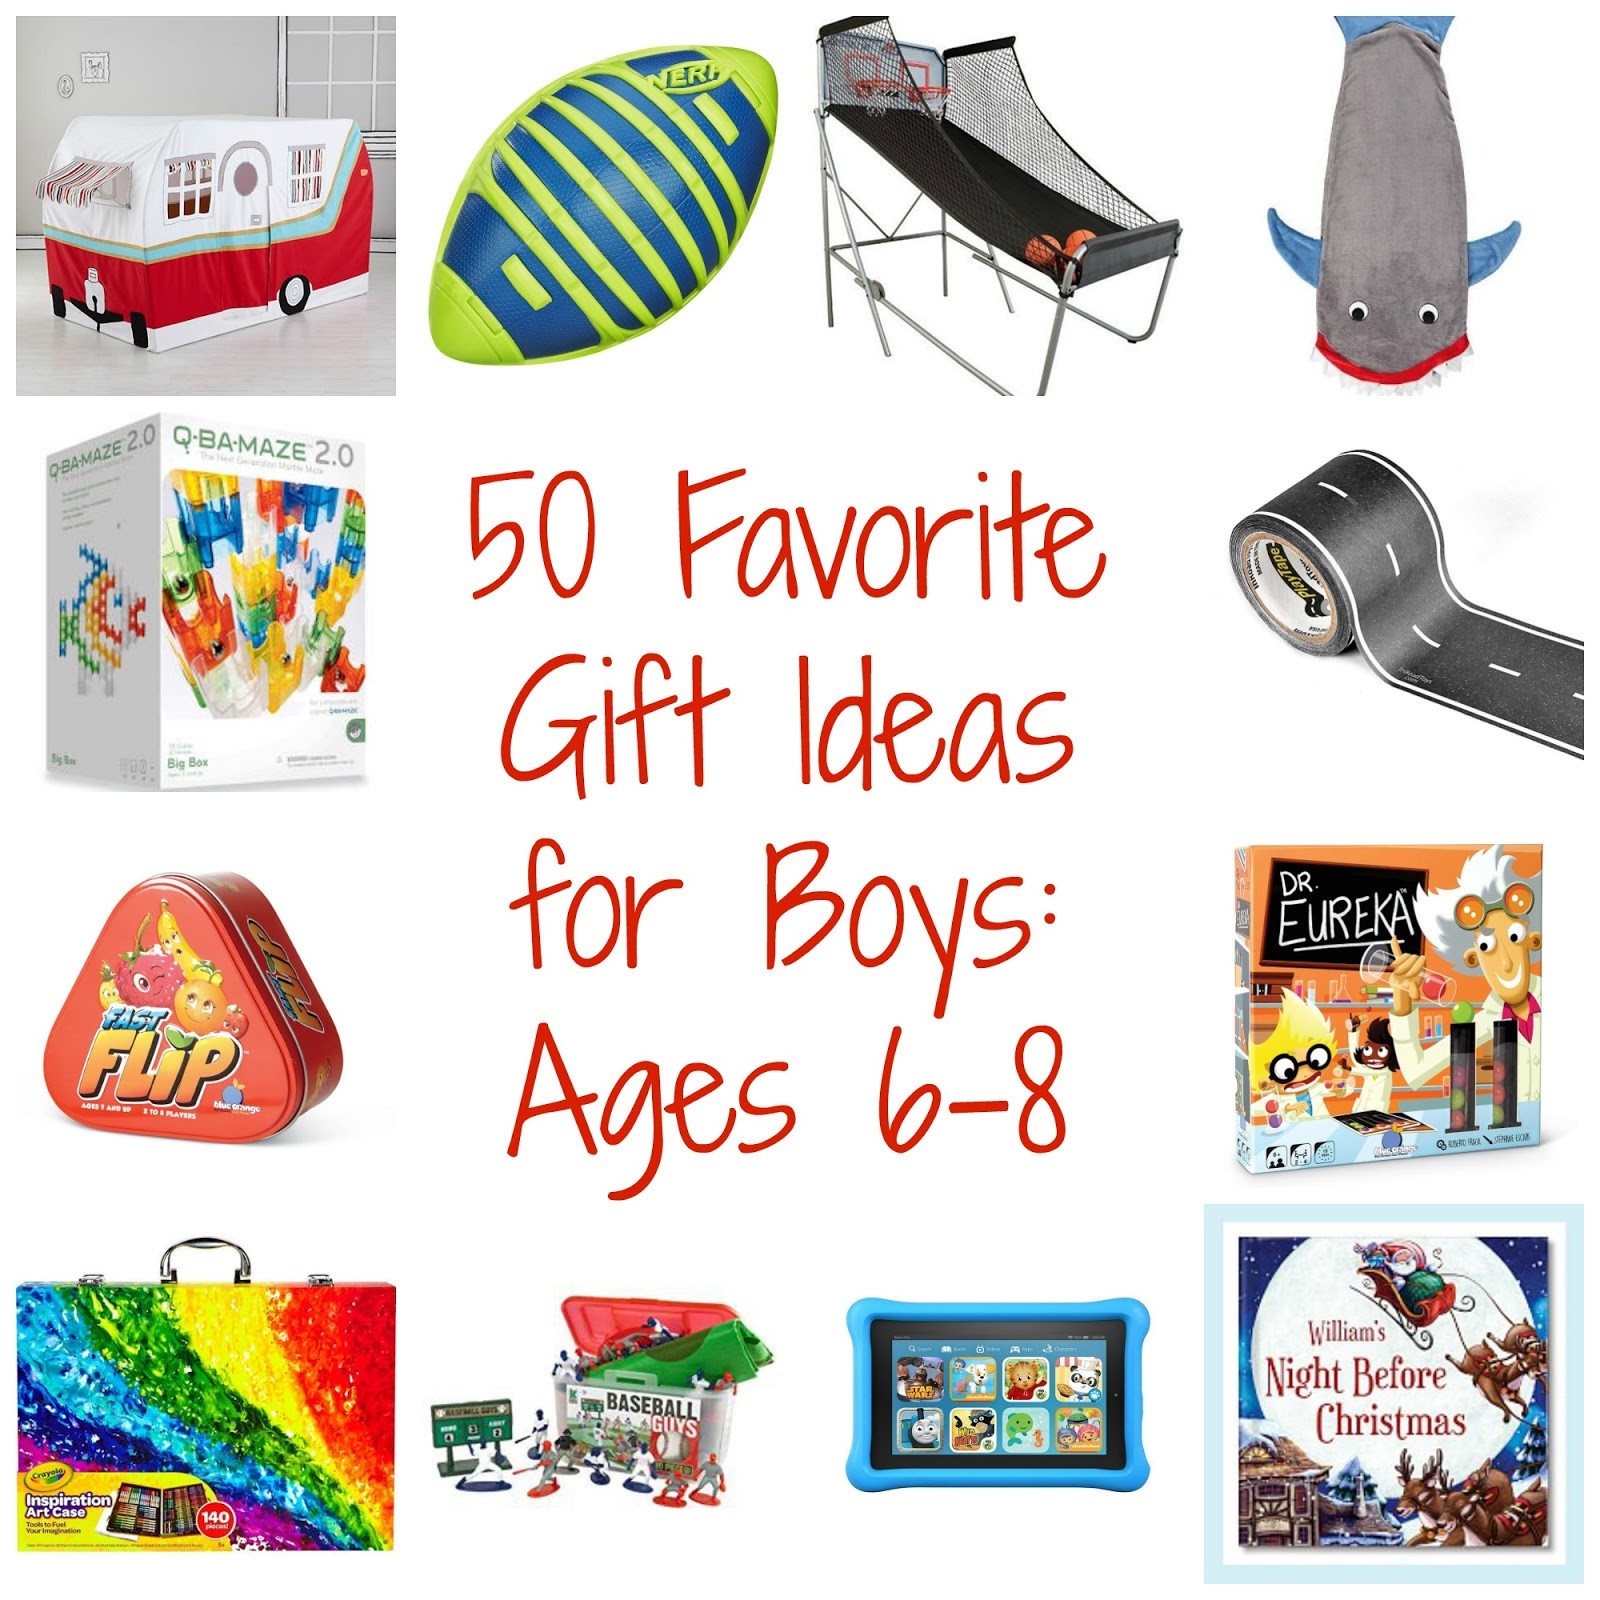 First Father'S Day Gift Ideas From Baby Boy  50 Favorite Gift Ideas for Boys Ages 6 8 The Chirping Moms